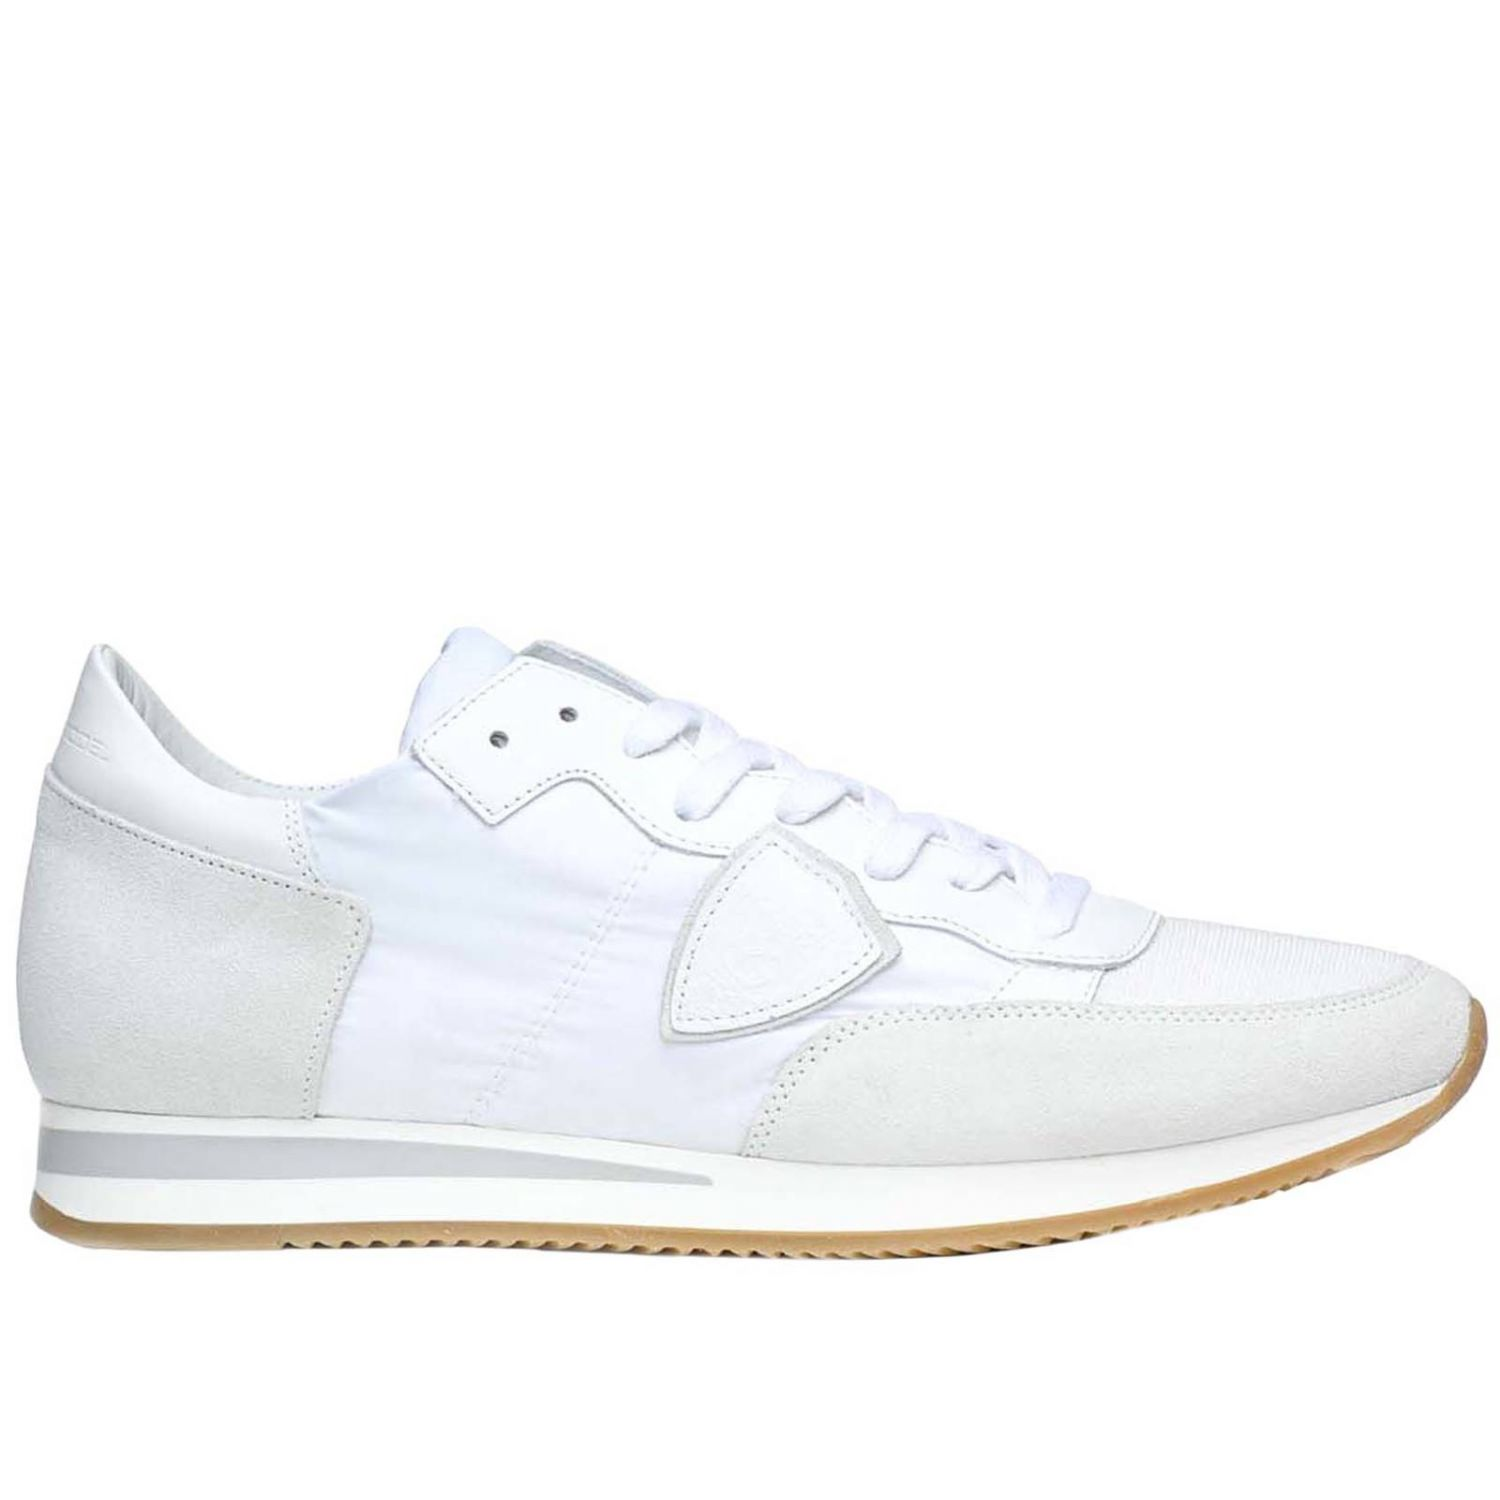 PHILIPPE MODEL | Sneakers Sneakers Women Philippe Model | Goxip